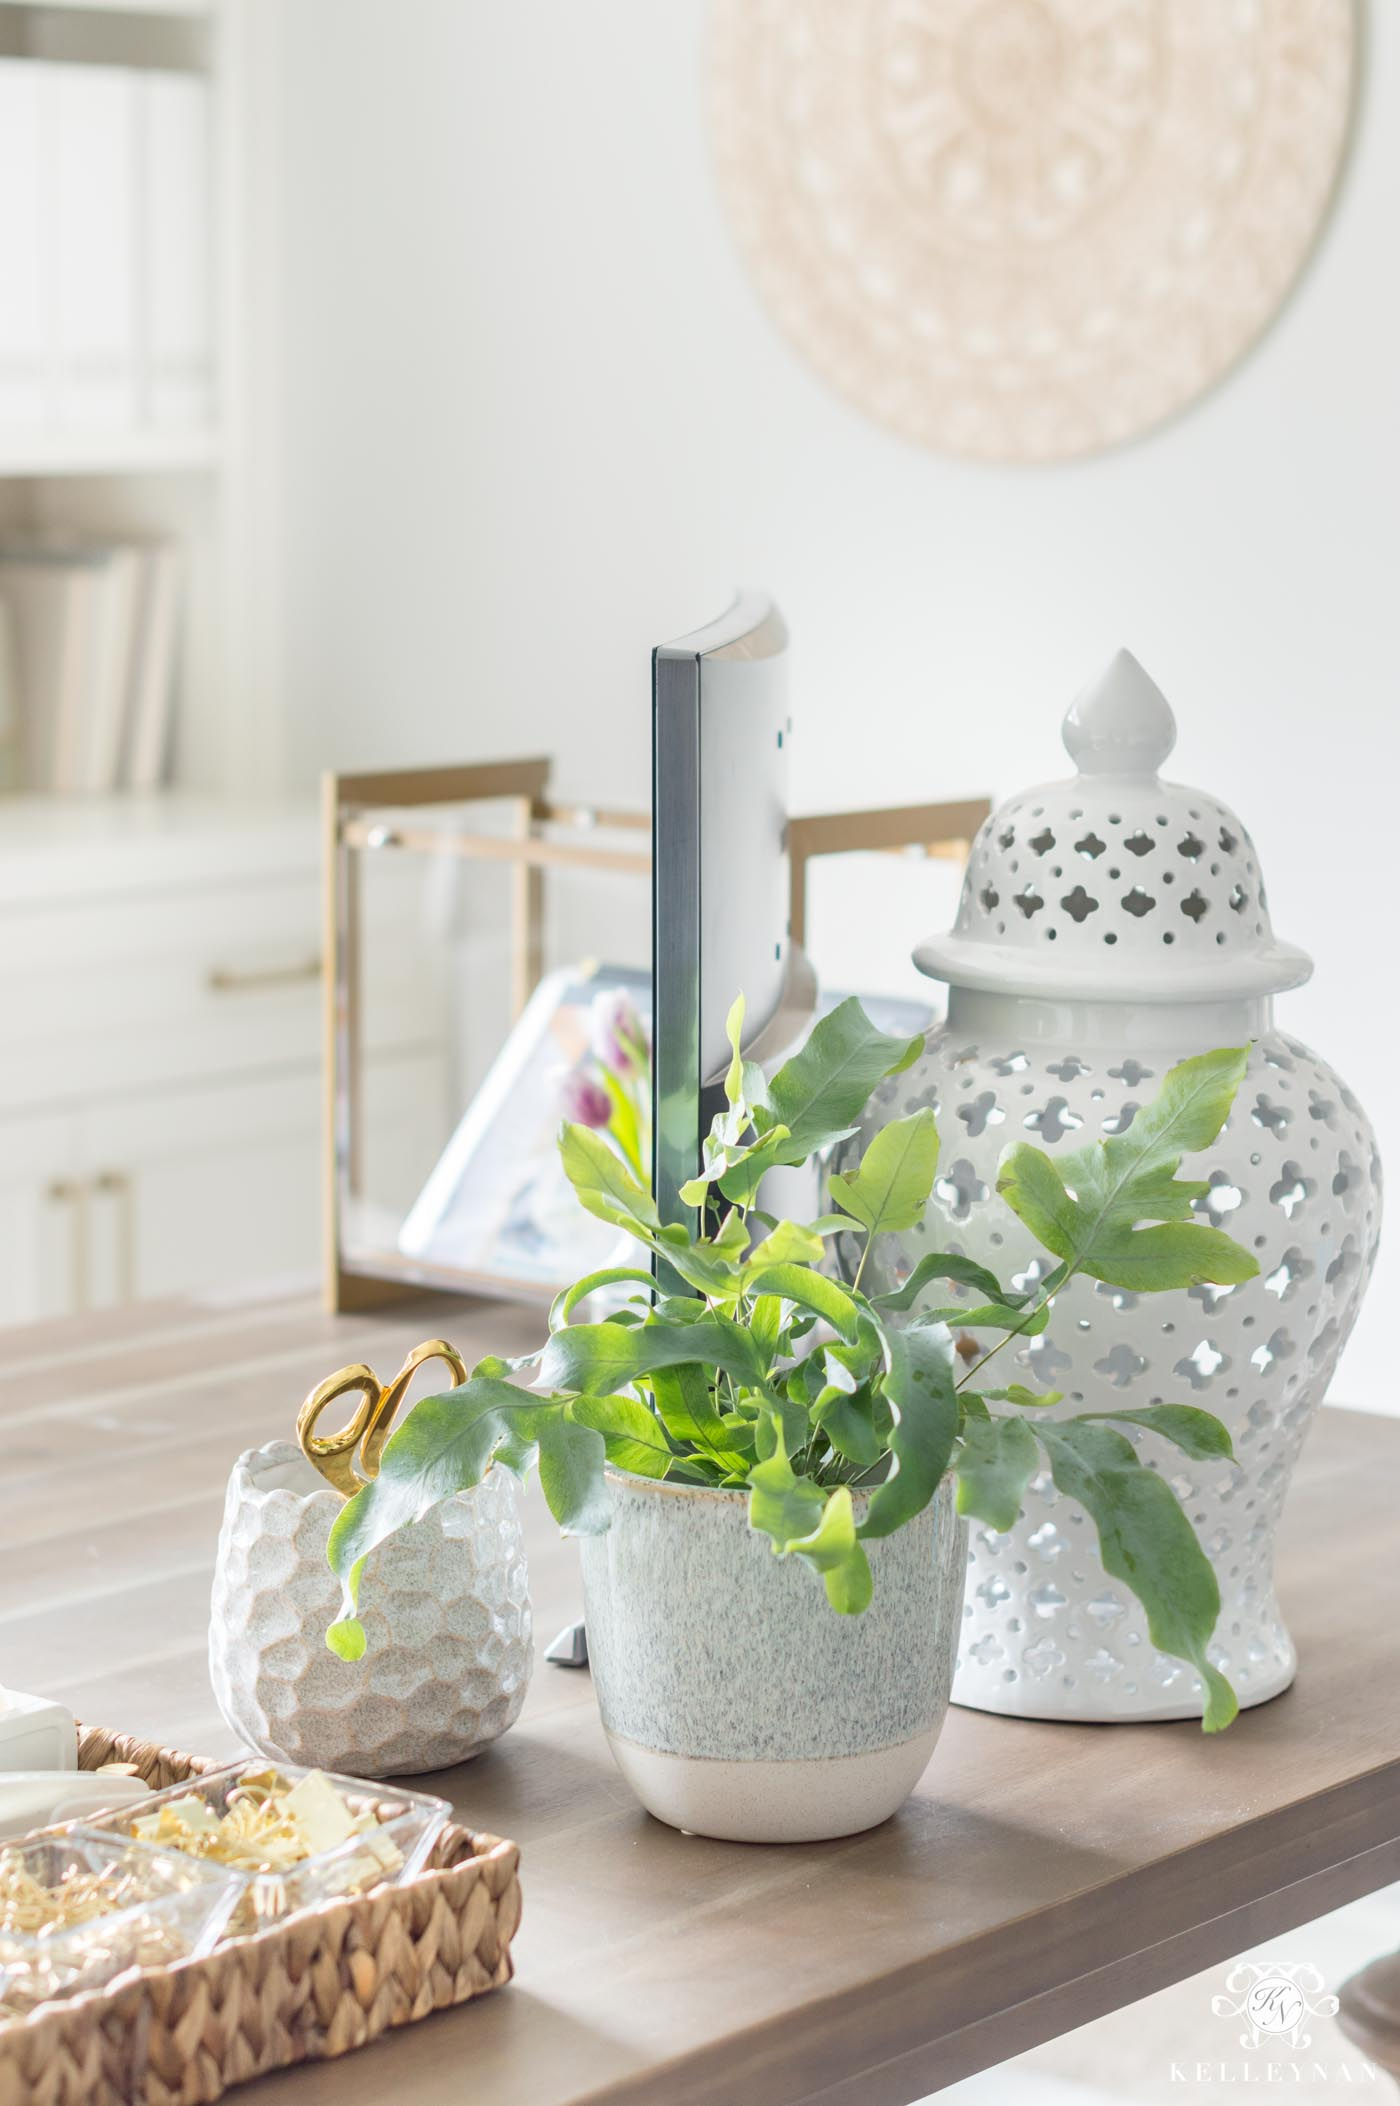 Desk decor and accessories for spring